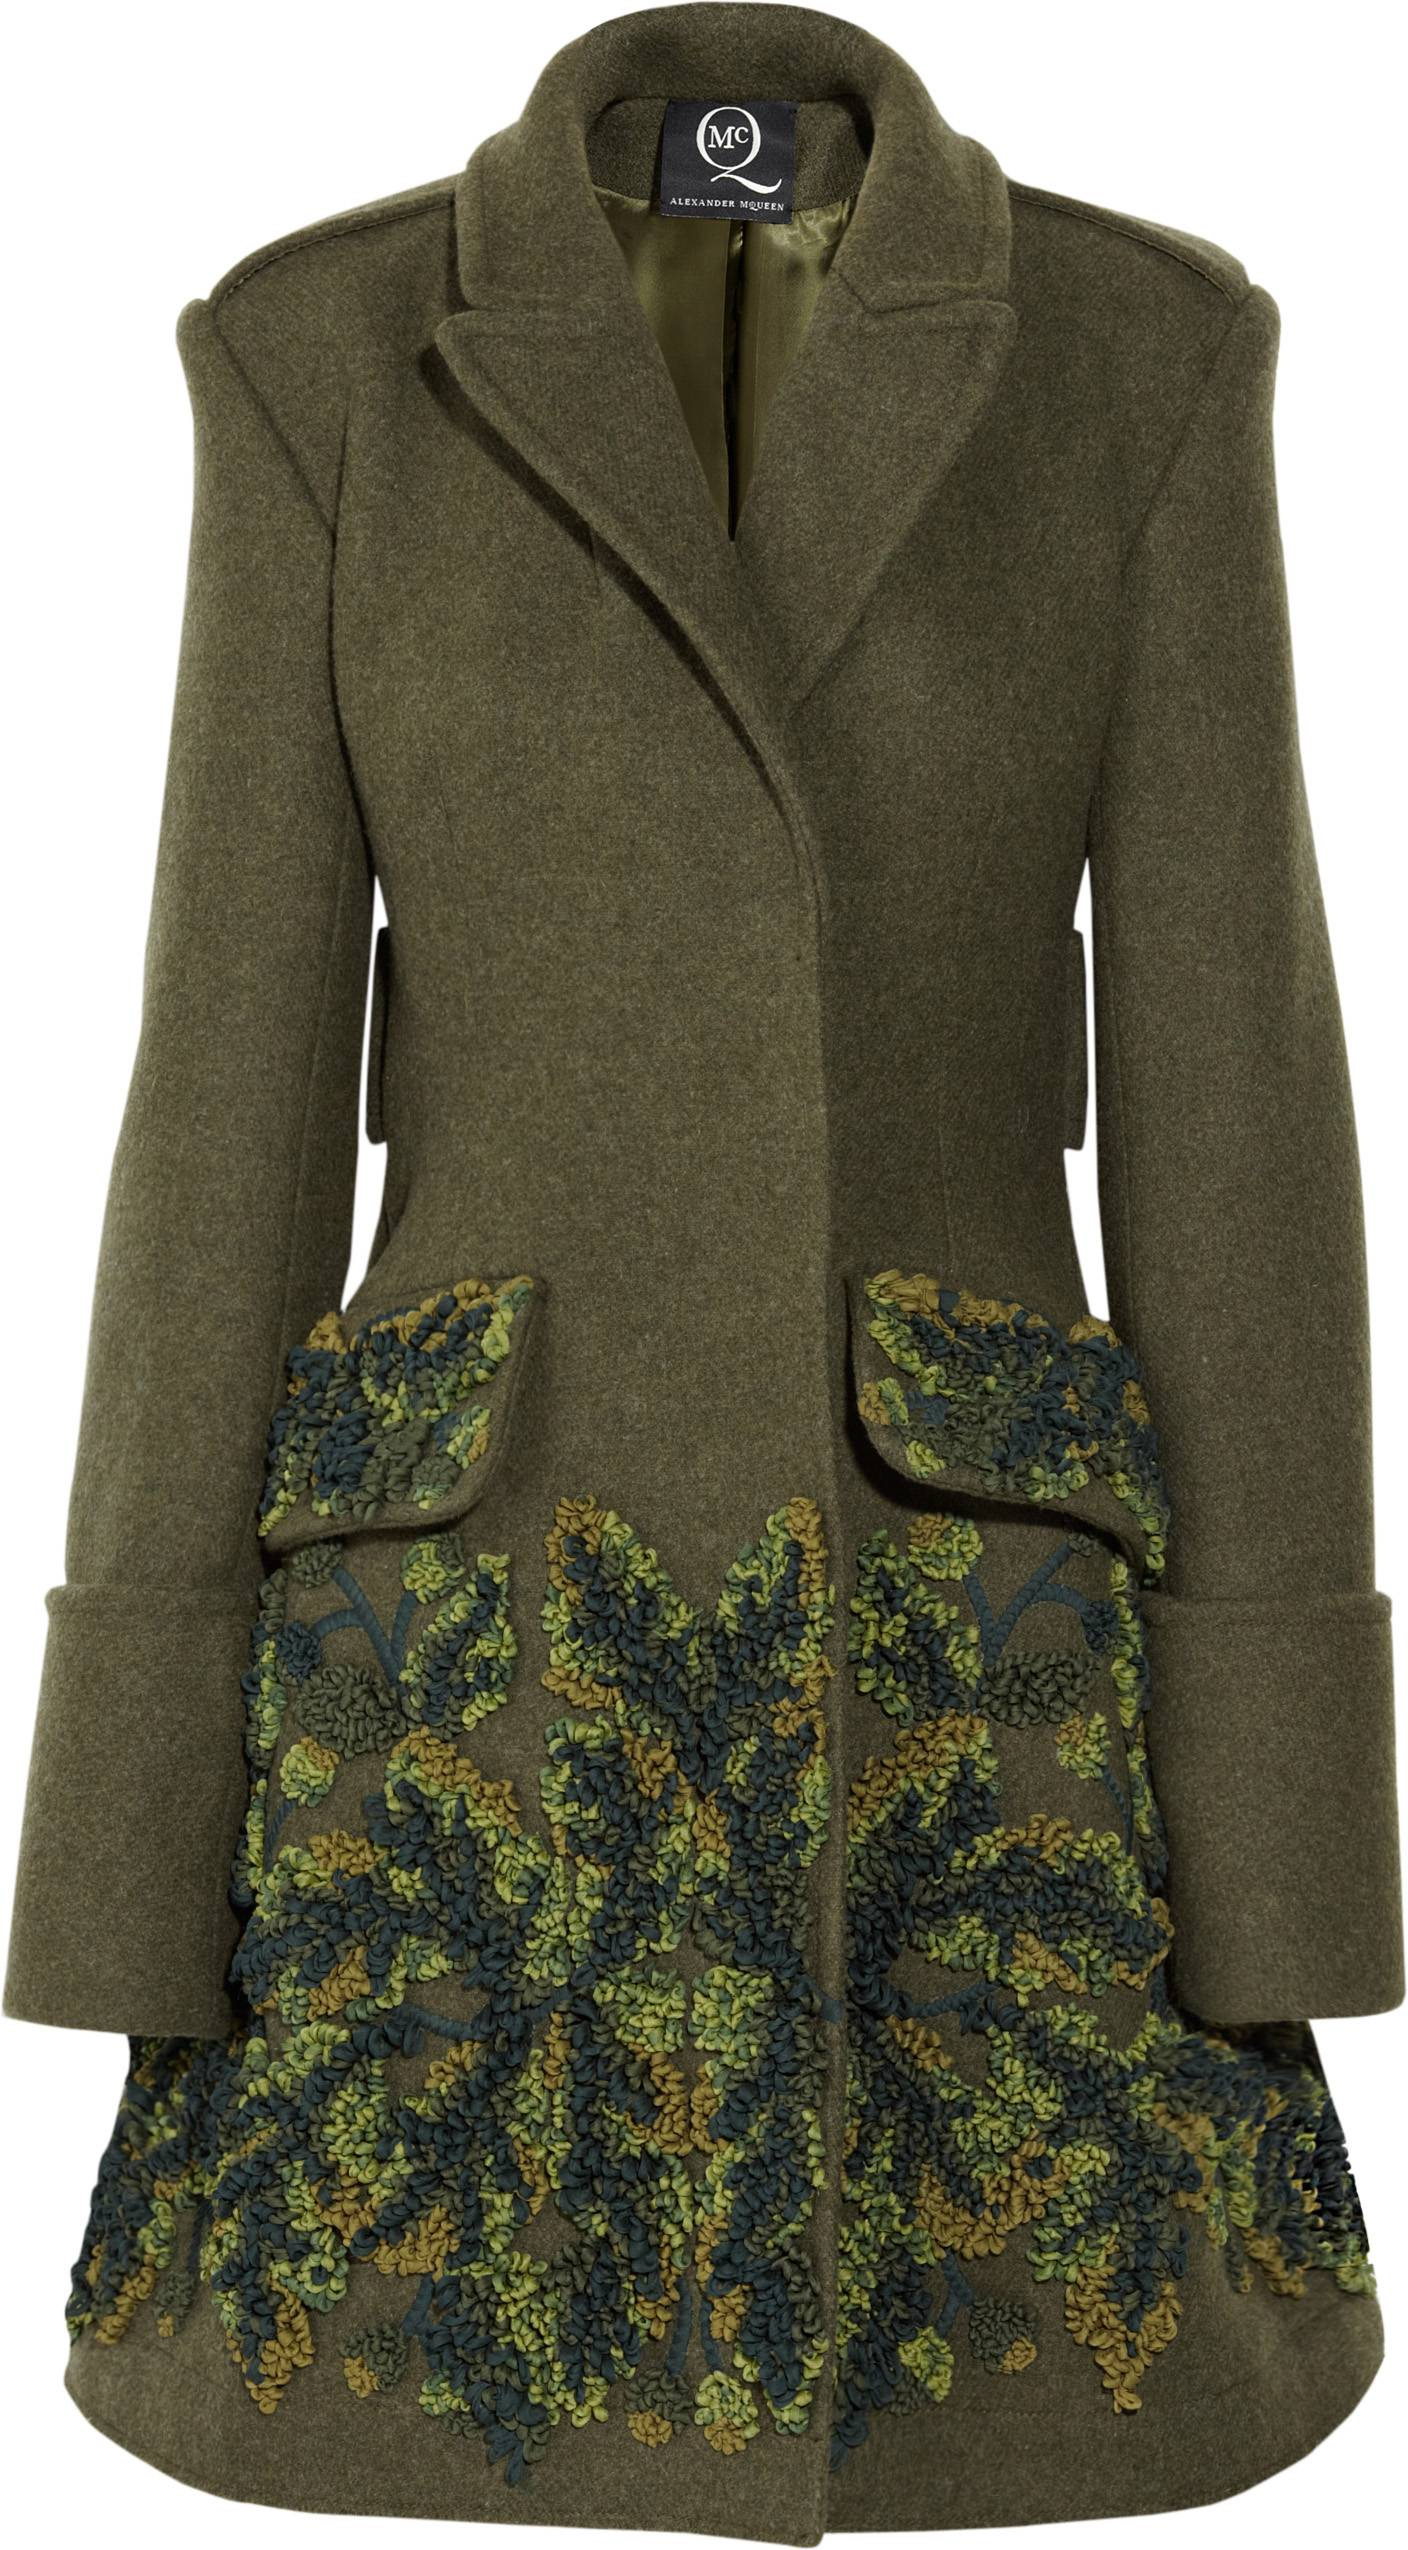 322563_McQ Alexander McQueen Embroidered Military Coat NET-A-PORTER